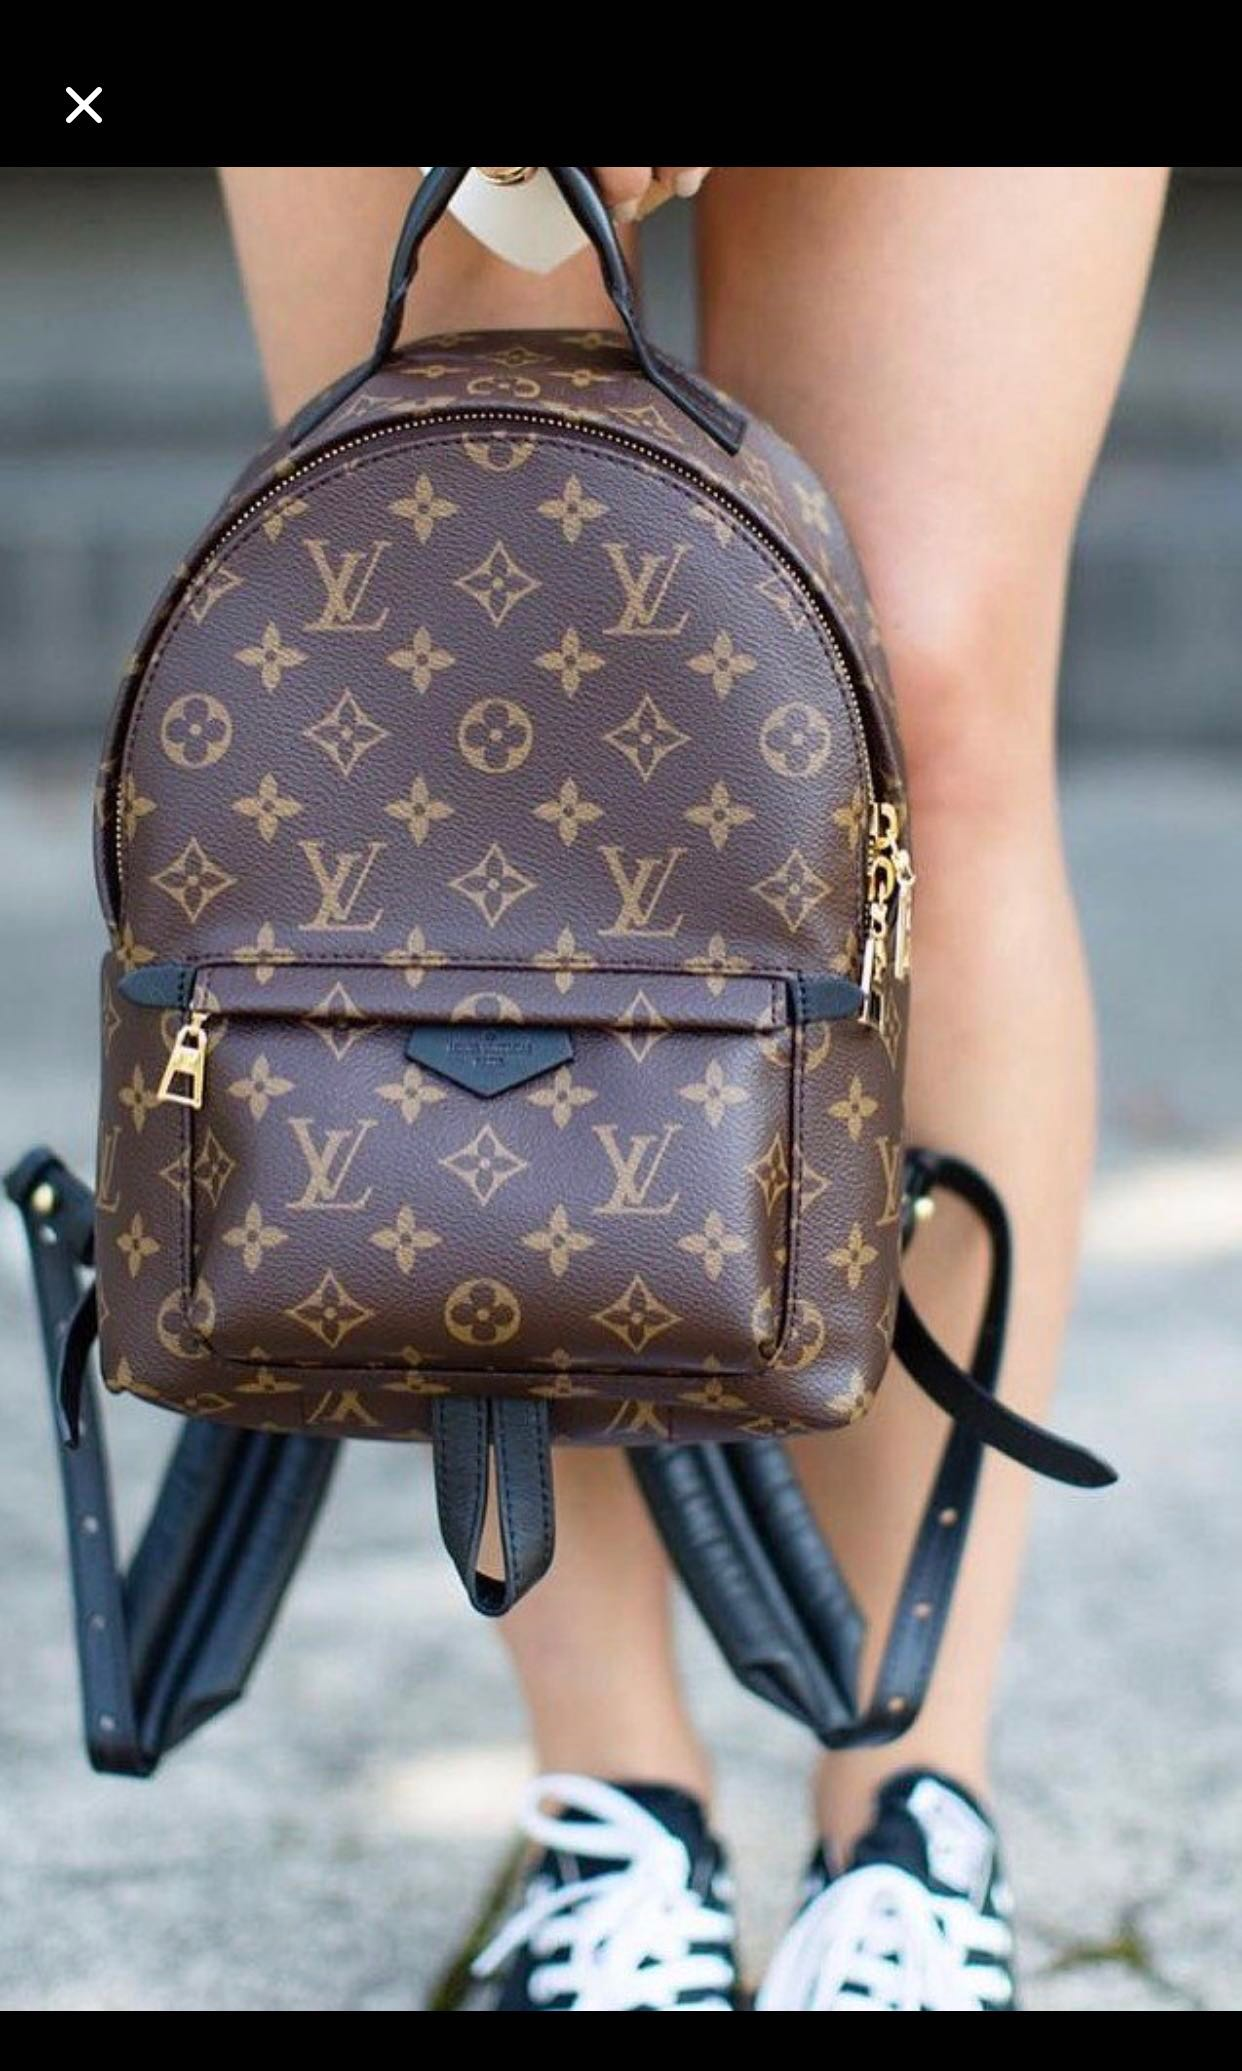 b7cc1e67a6d5 LV (Louis Vuitton) Palm Spring Bag